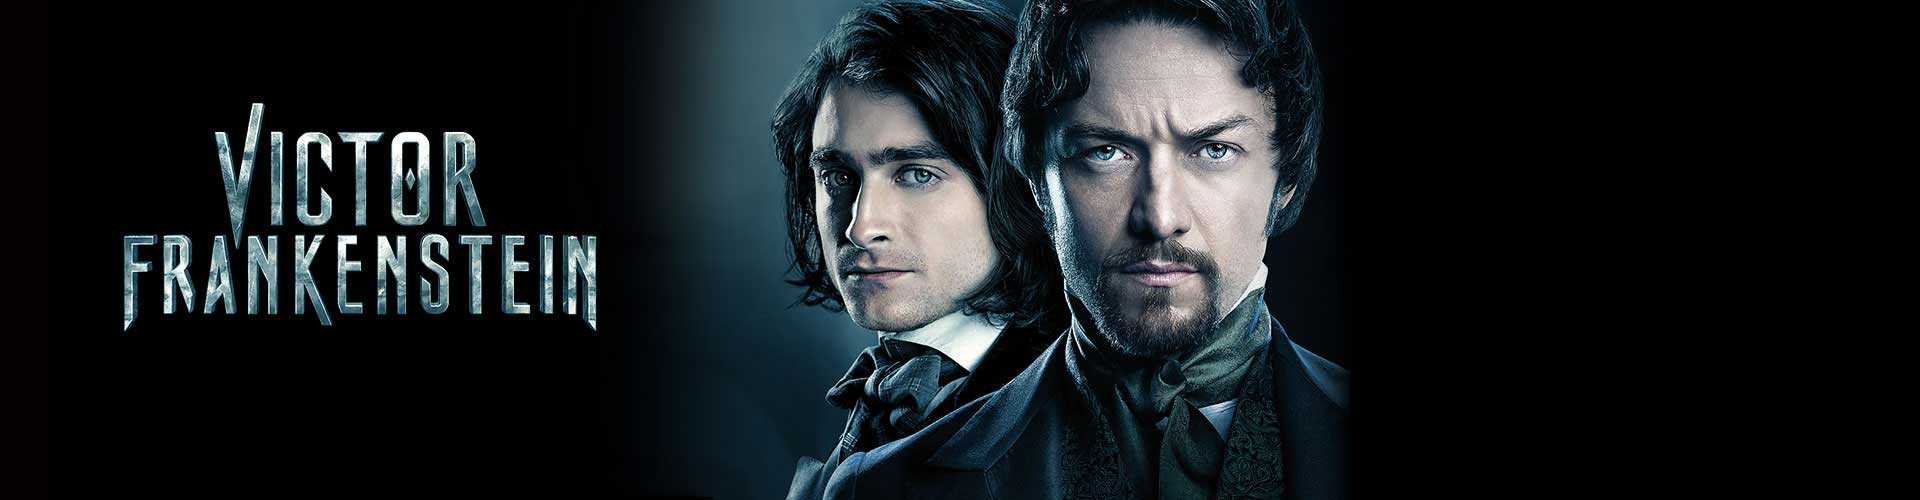 Victor Frankenstein – available now on Virgin Movies